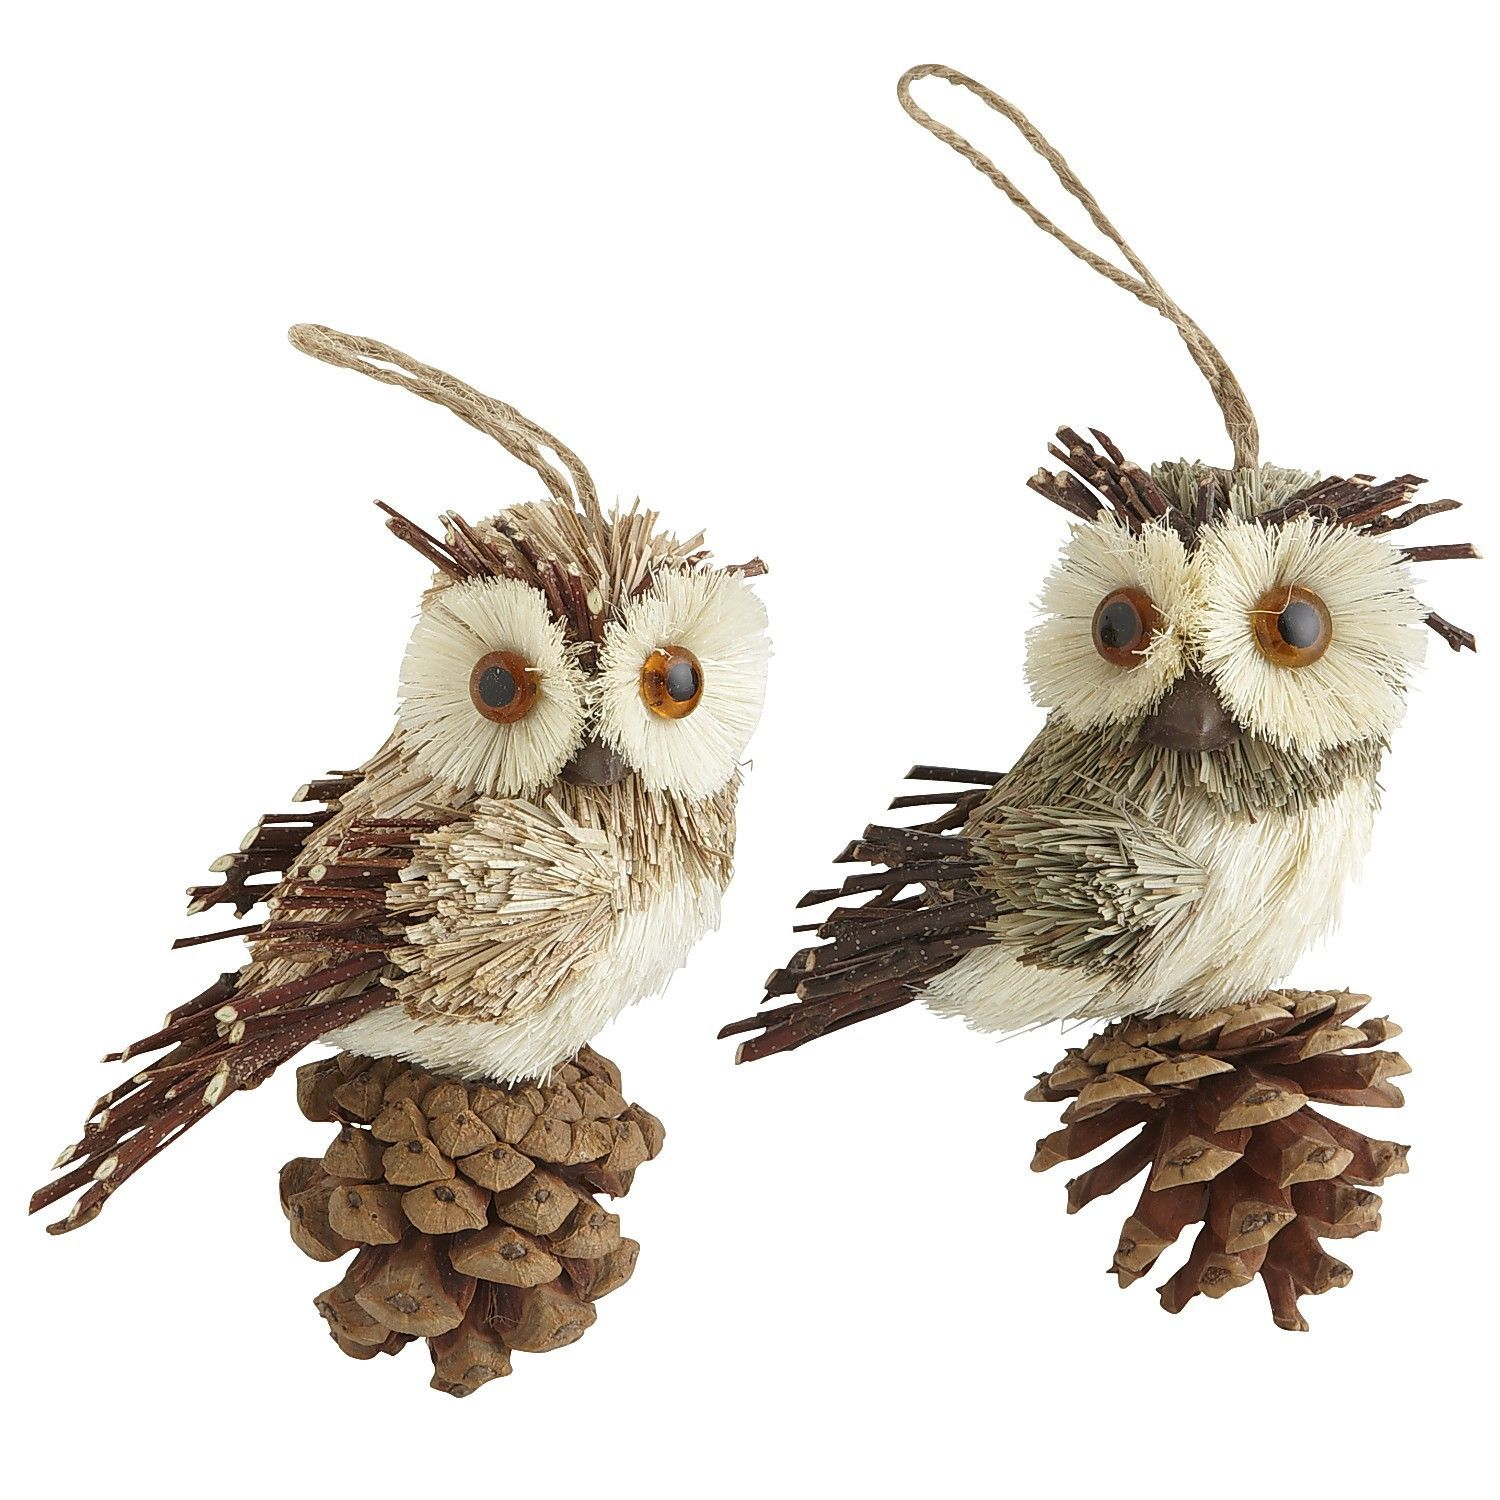 White Owl Ornaments  Pier 1 Imports 2013 Woodland Themed Ornaments